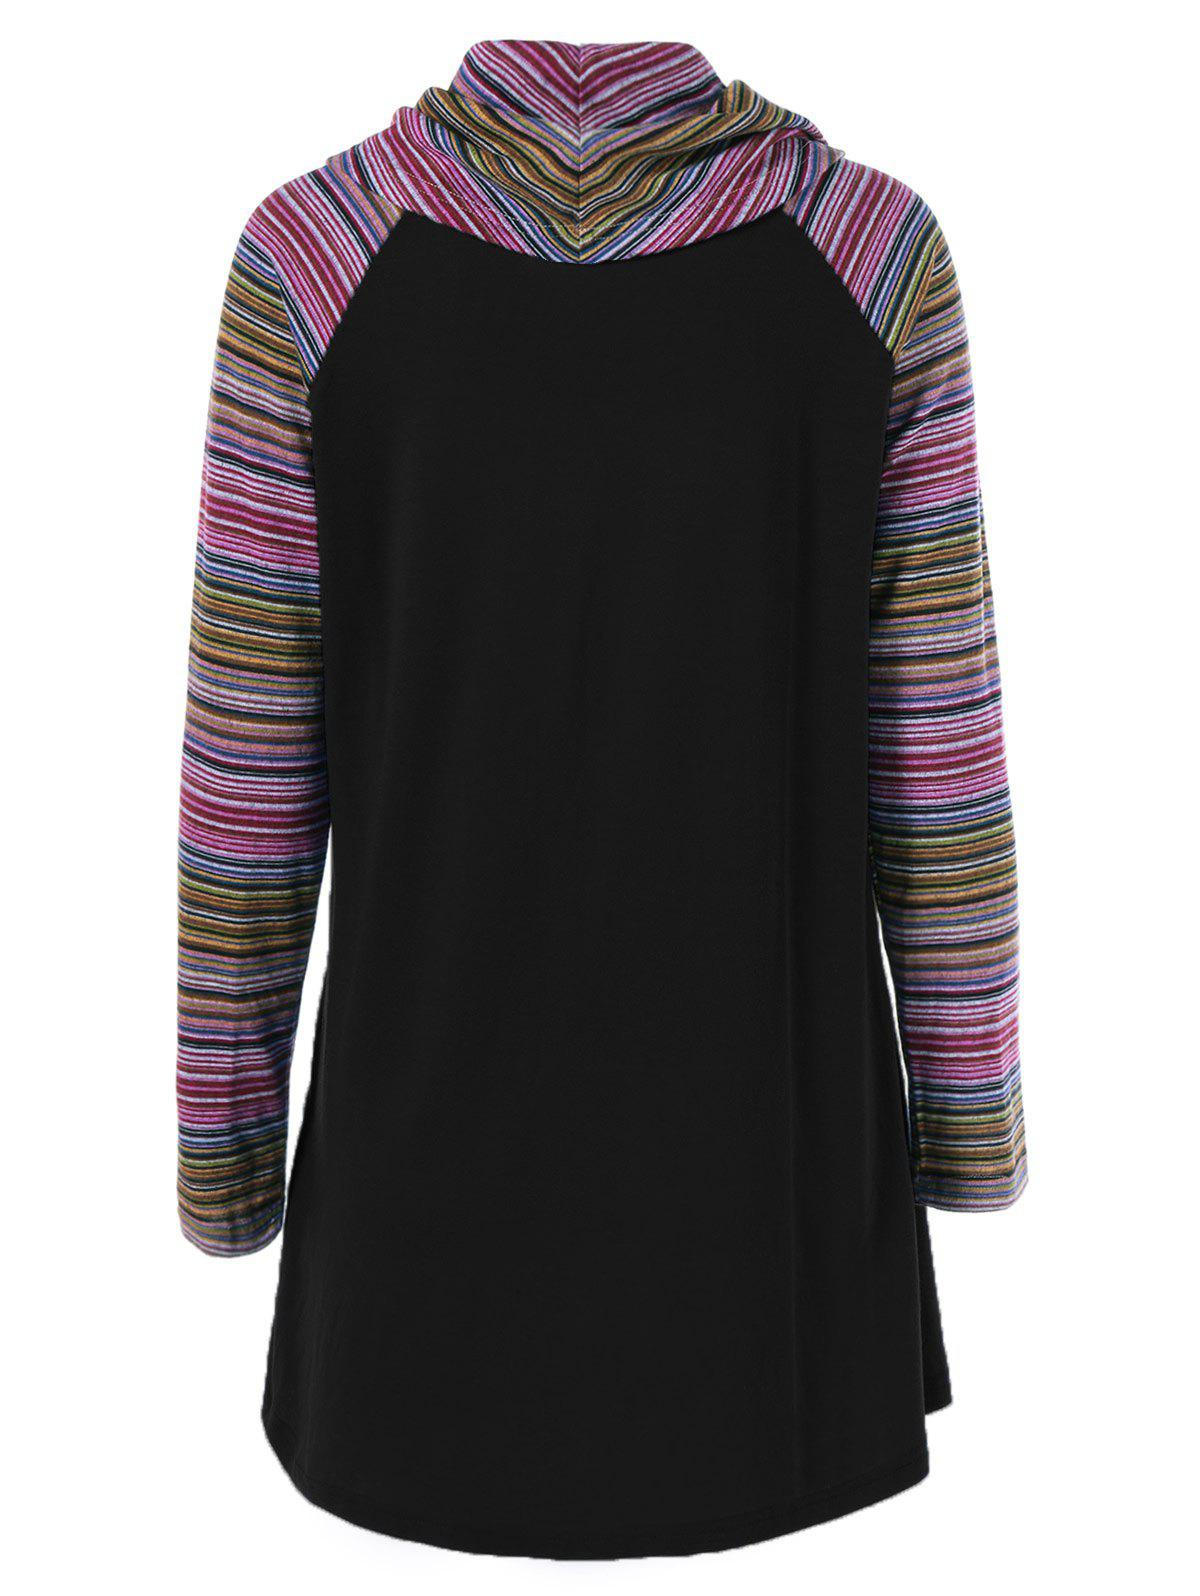 Cowl Neck Colorful Striped T-Shirt - BLACK XL